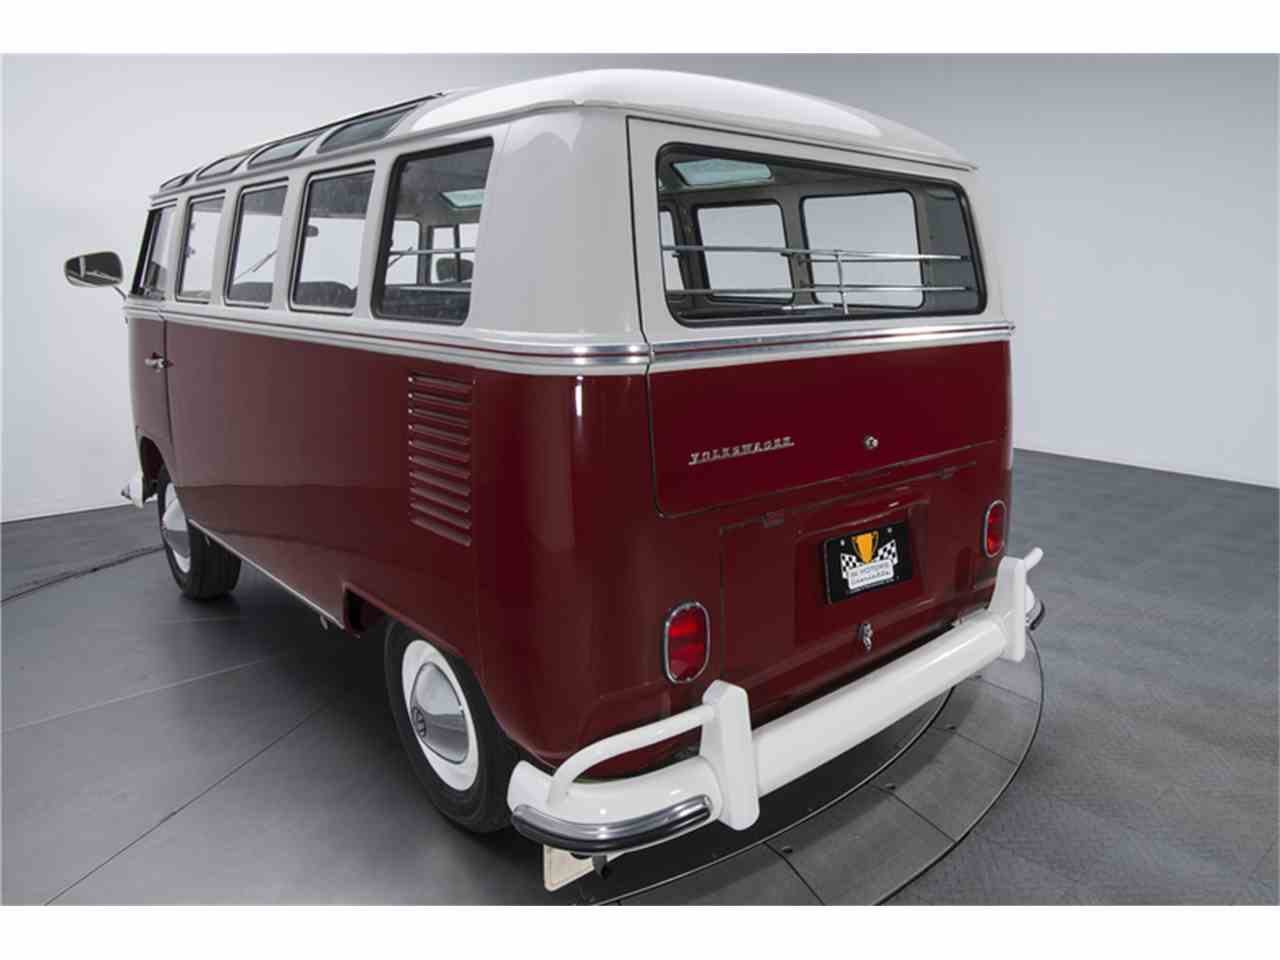 1966 volkswagen kombi 21 window bus for sale classiccars for 1966 21 window vw bus